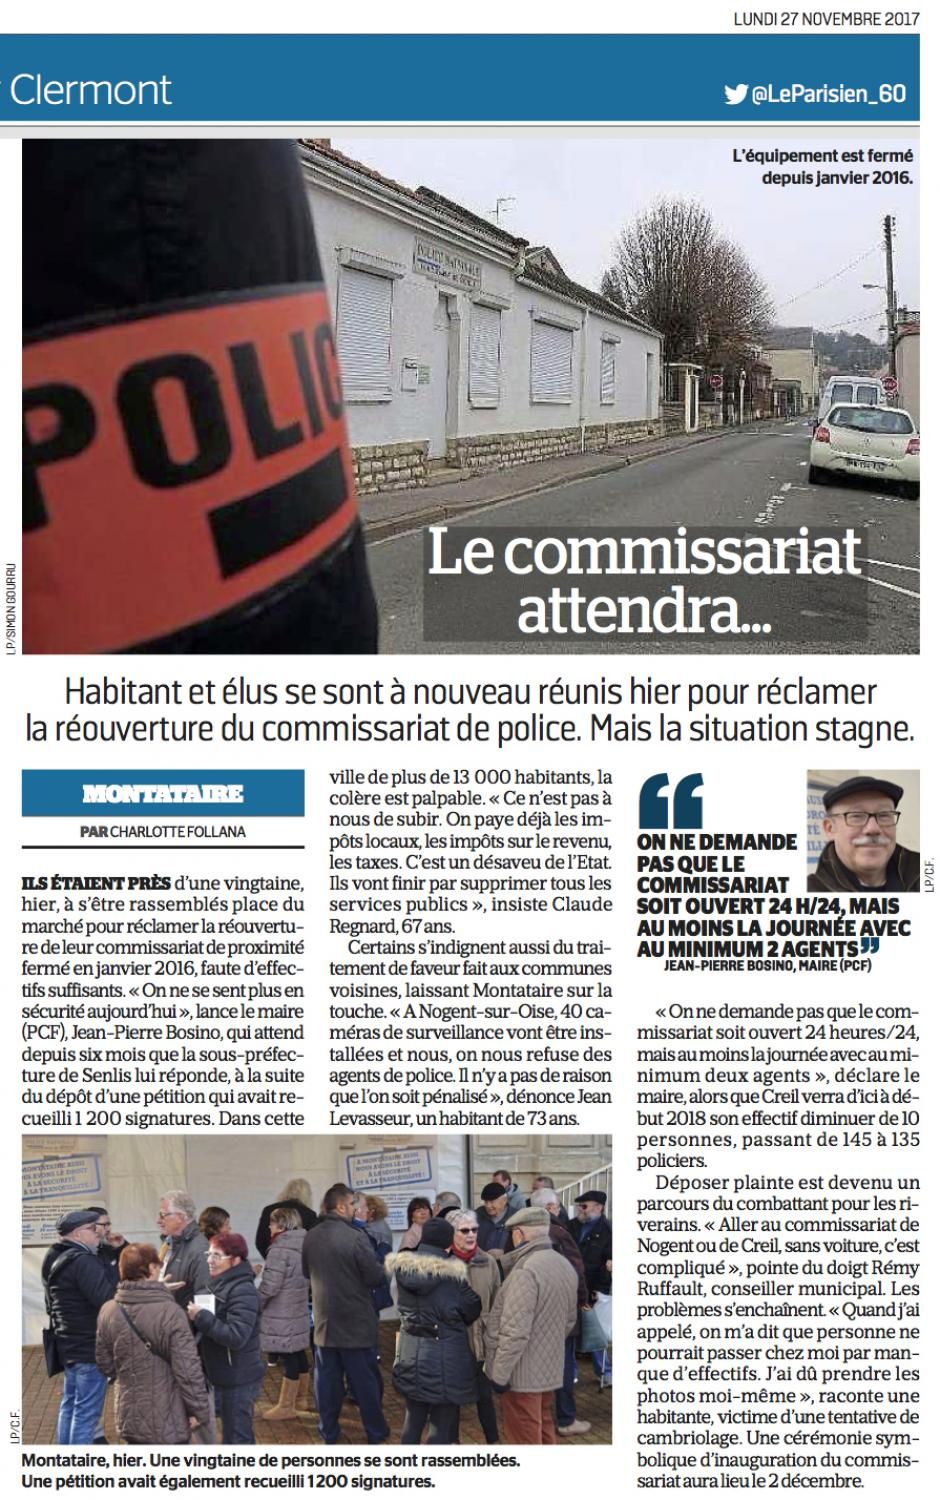 20171127-LeP-Montataire-Le commissariat attendra…